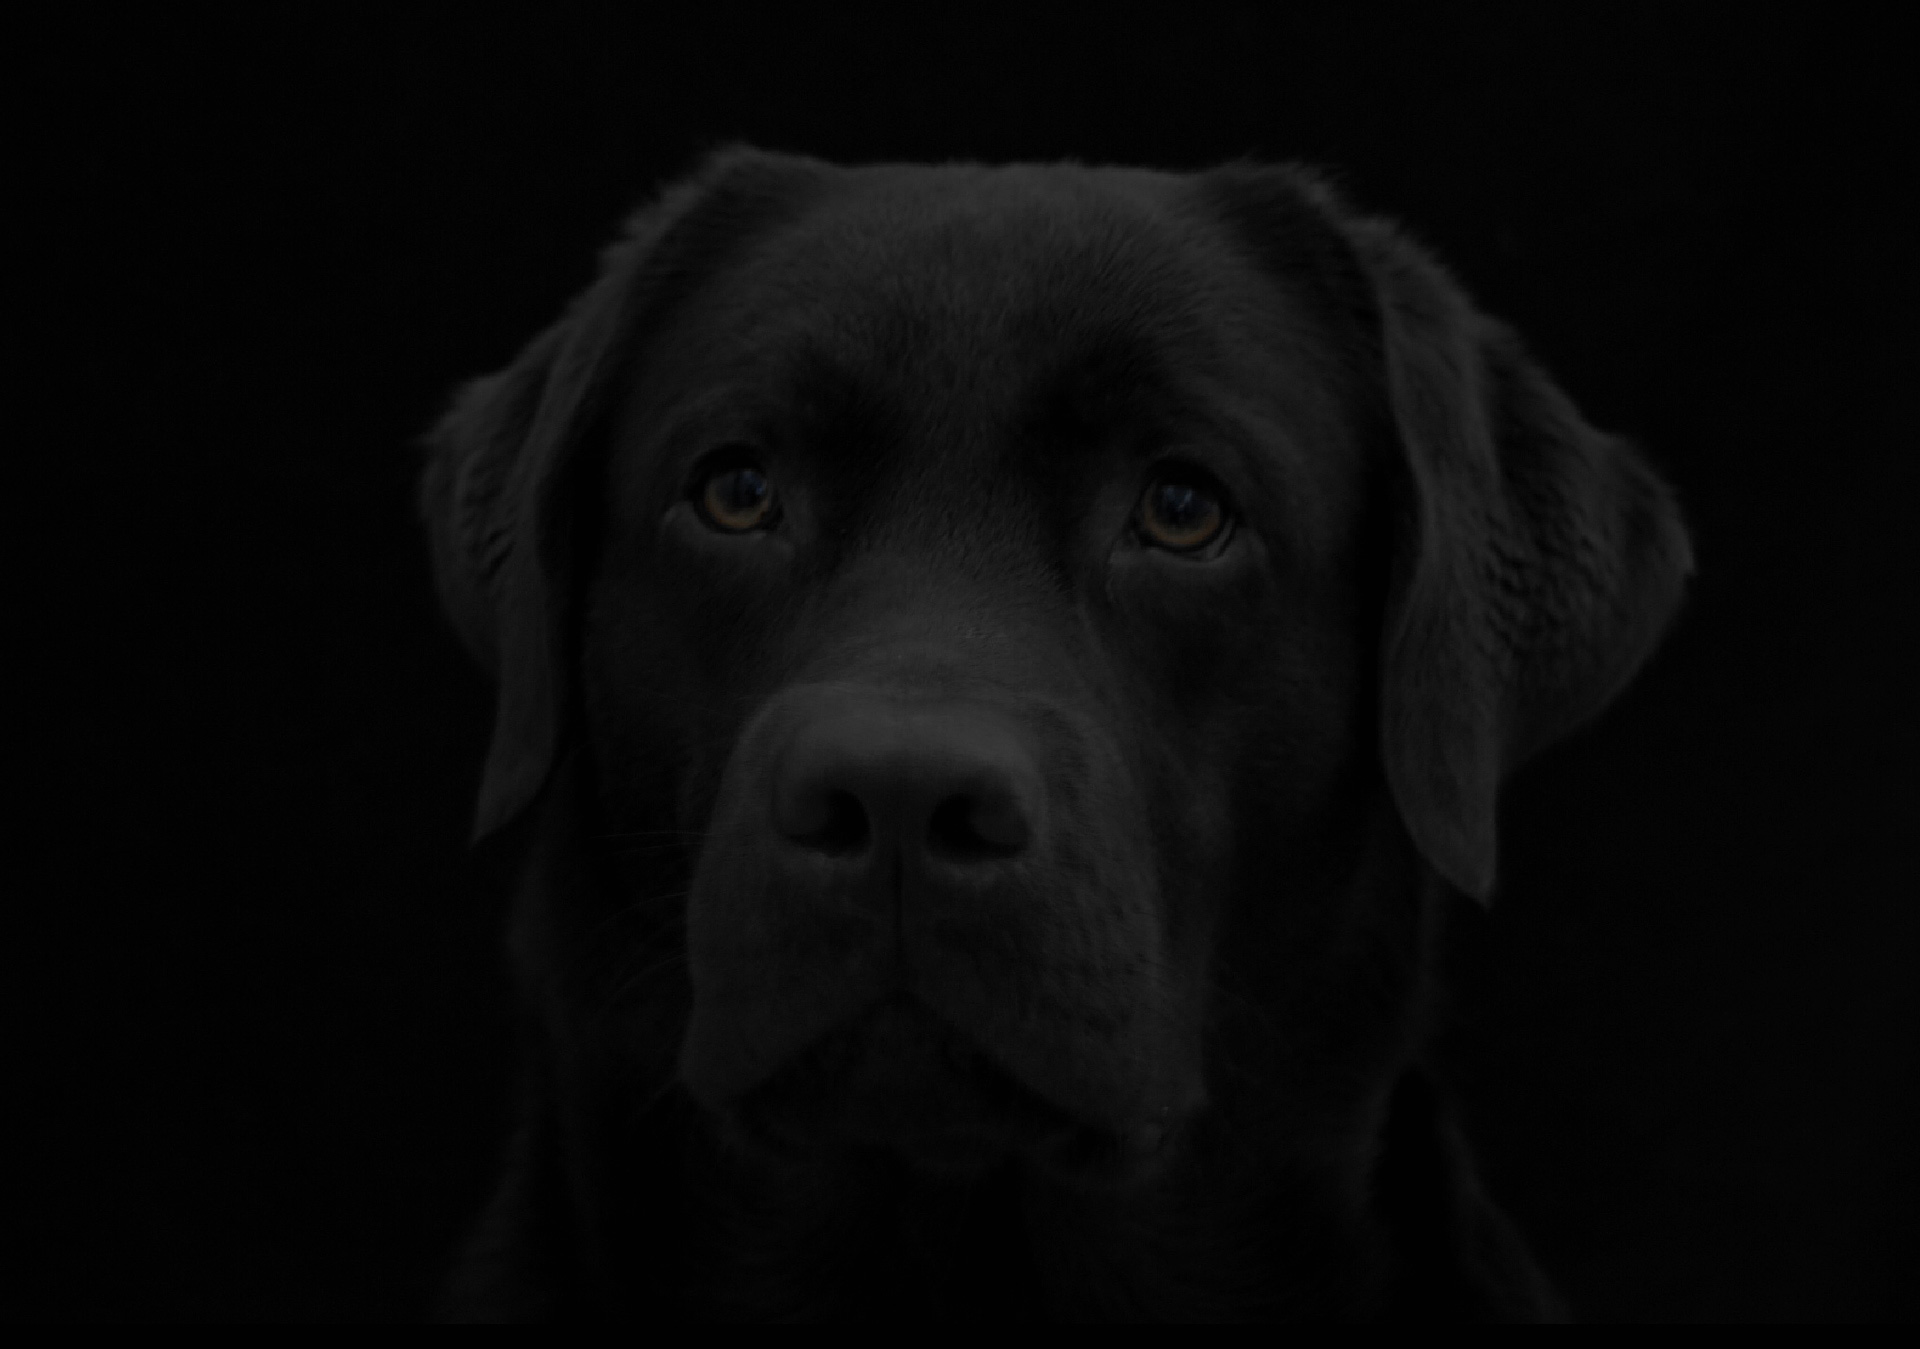 Portrait of a black Labrador in the studio against a black background